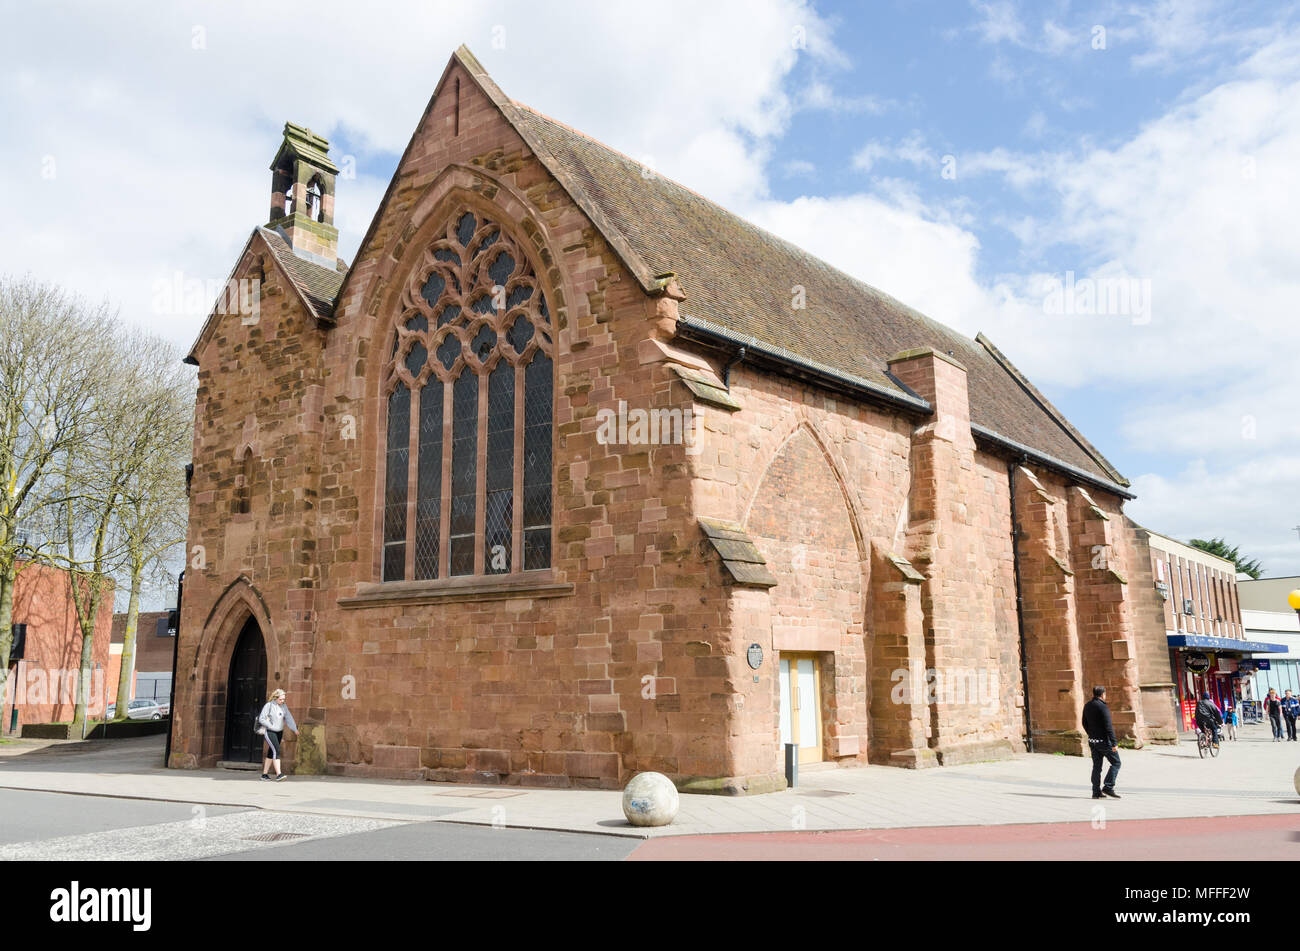 Former chapel of the Hospital of St John The Baptist which subsequently became a free grammar school and is now a scheduled ancient monument,Coventry - Stock Image